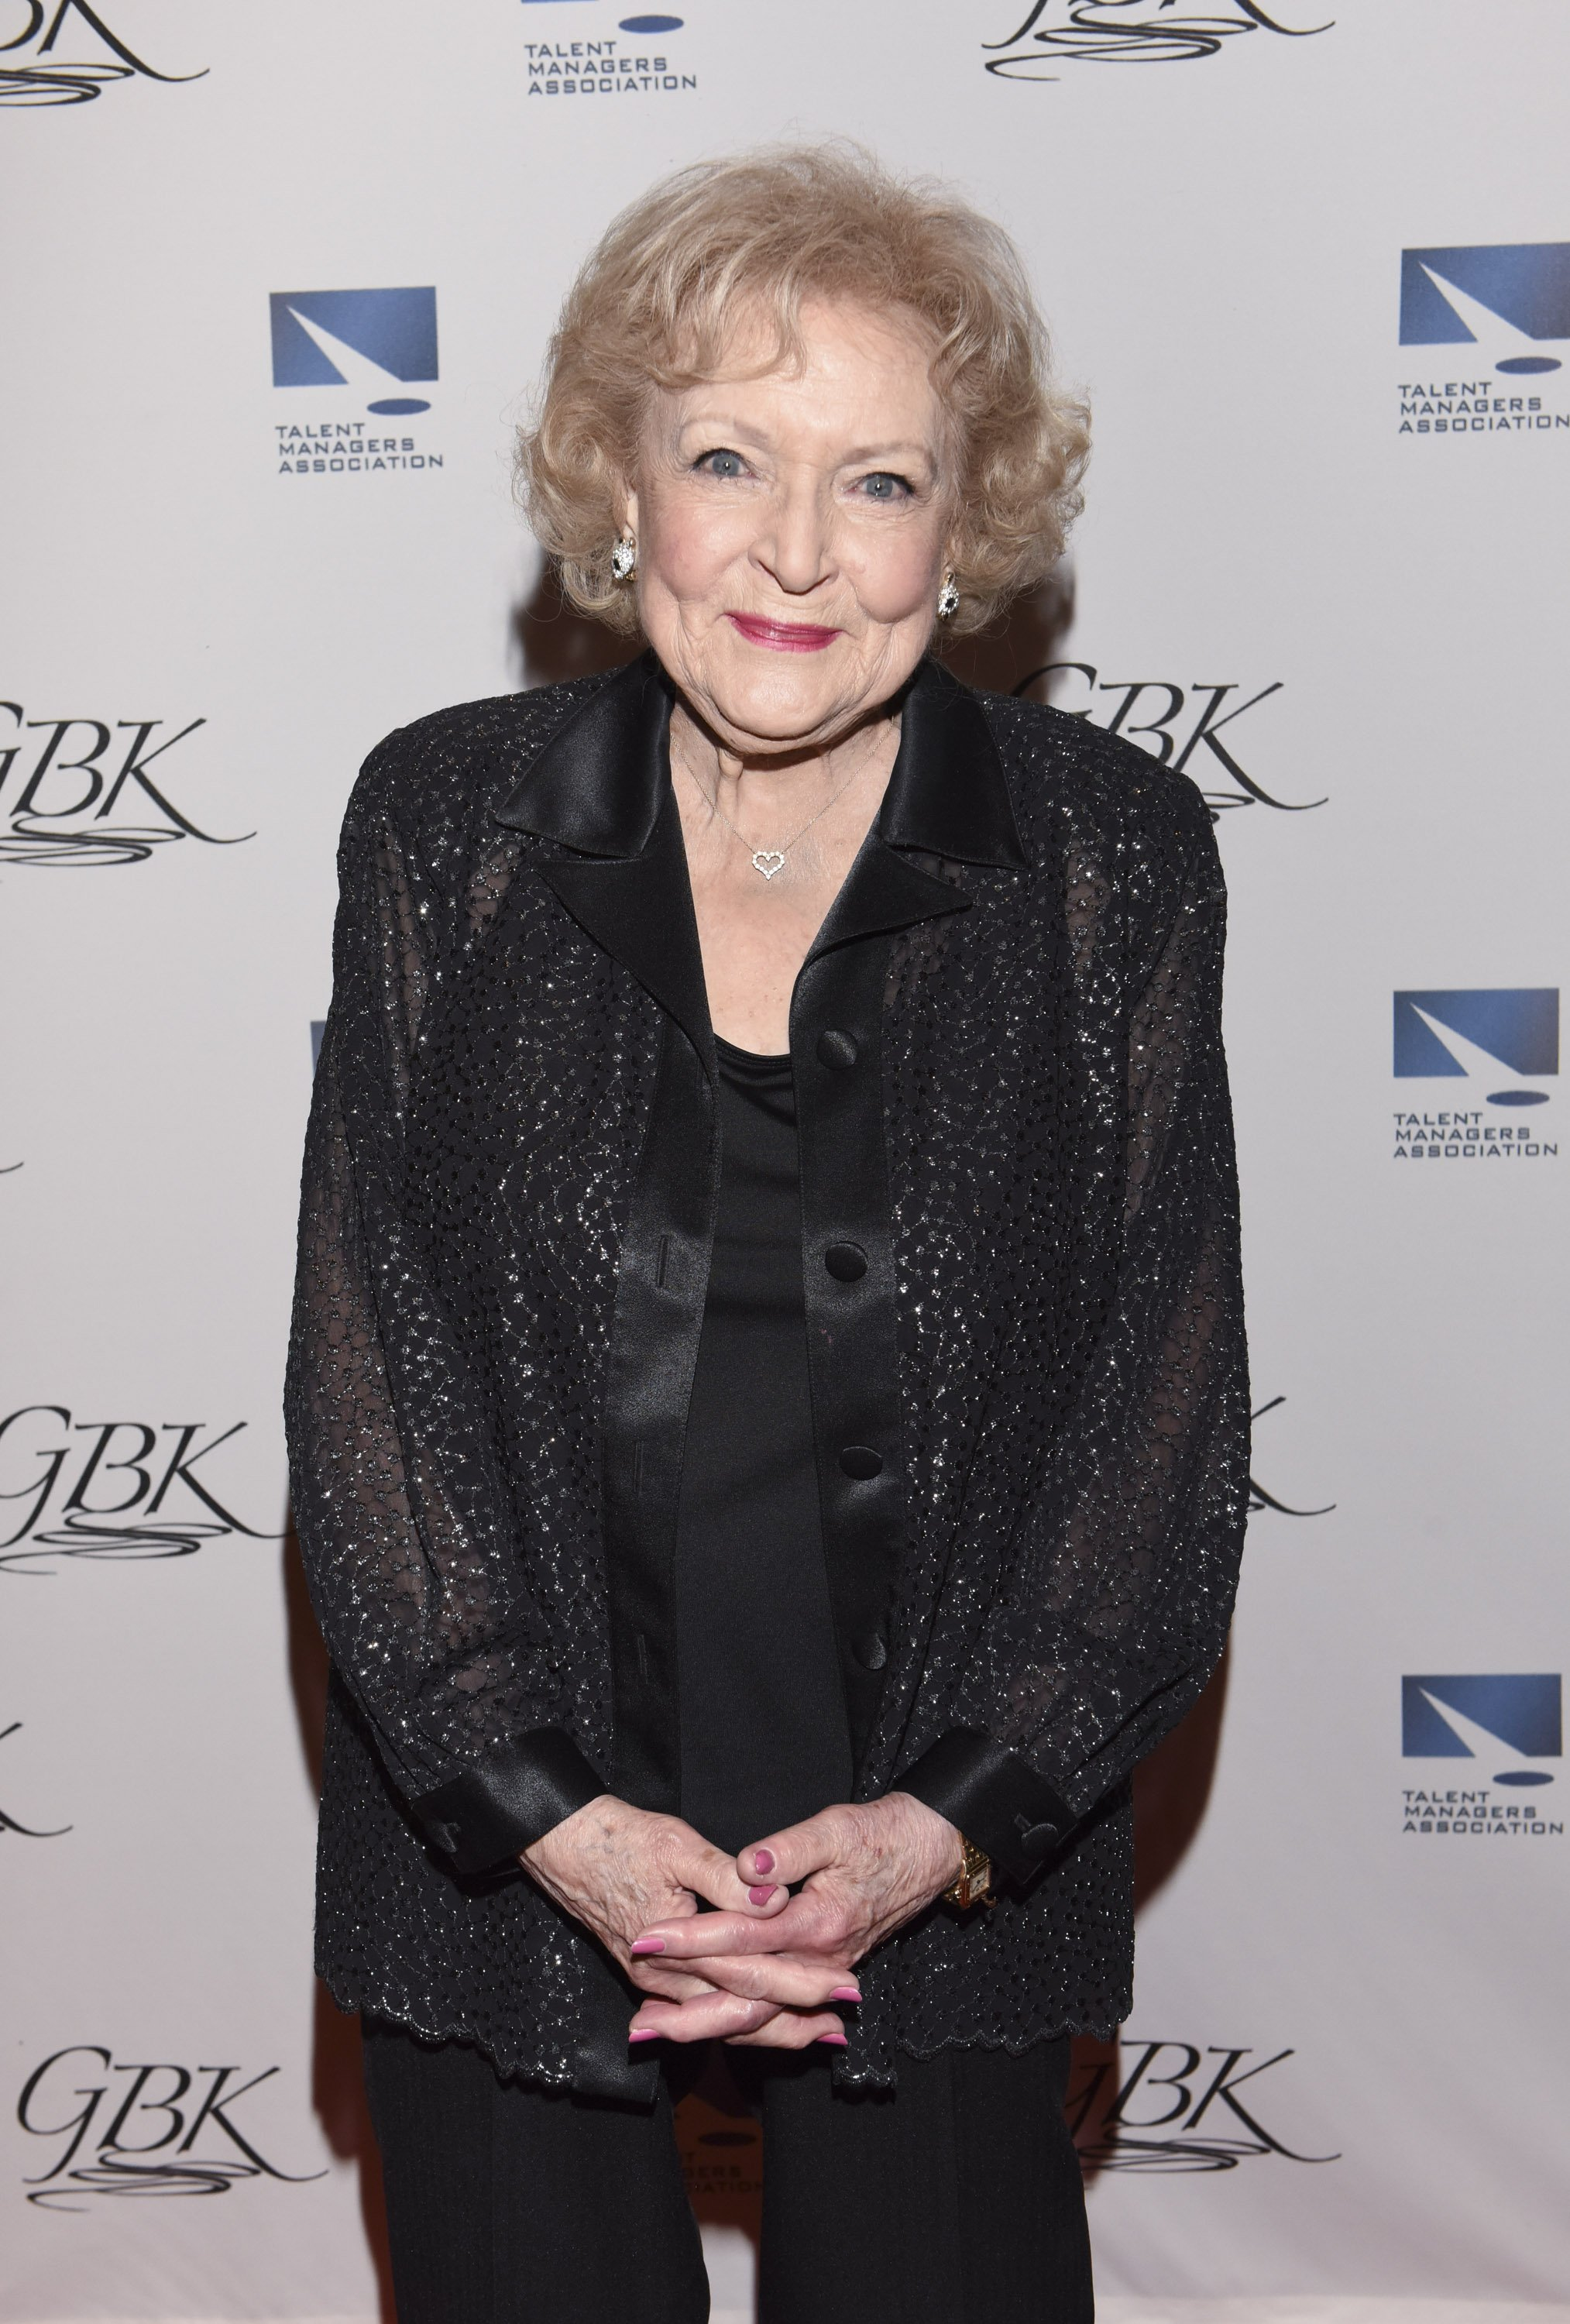 Betty White attends The TMA 2015 Heller Awards on May 28, 201,5 in Century City, California. | Source: Getty Images.